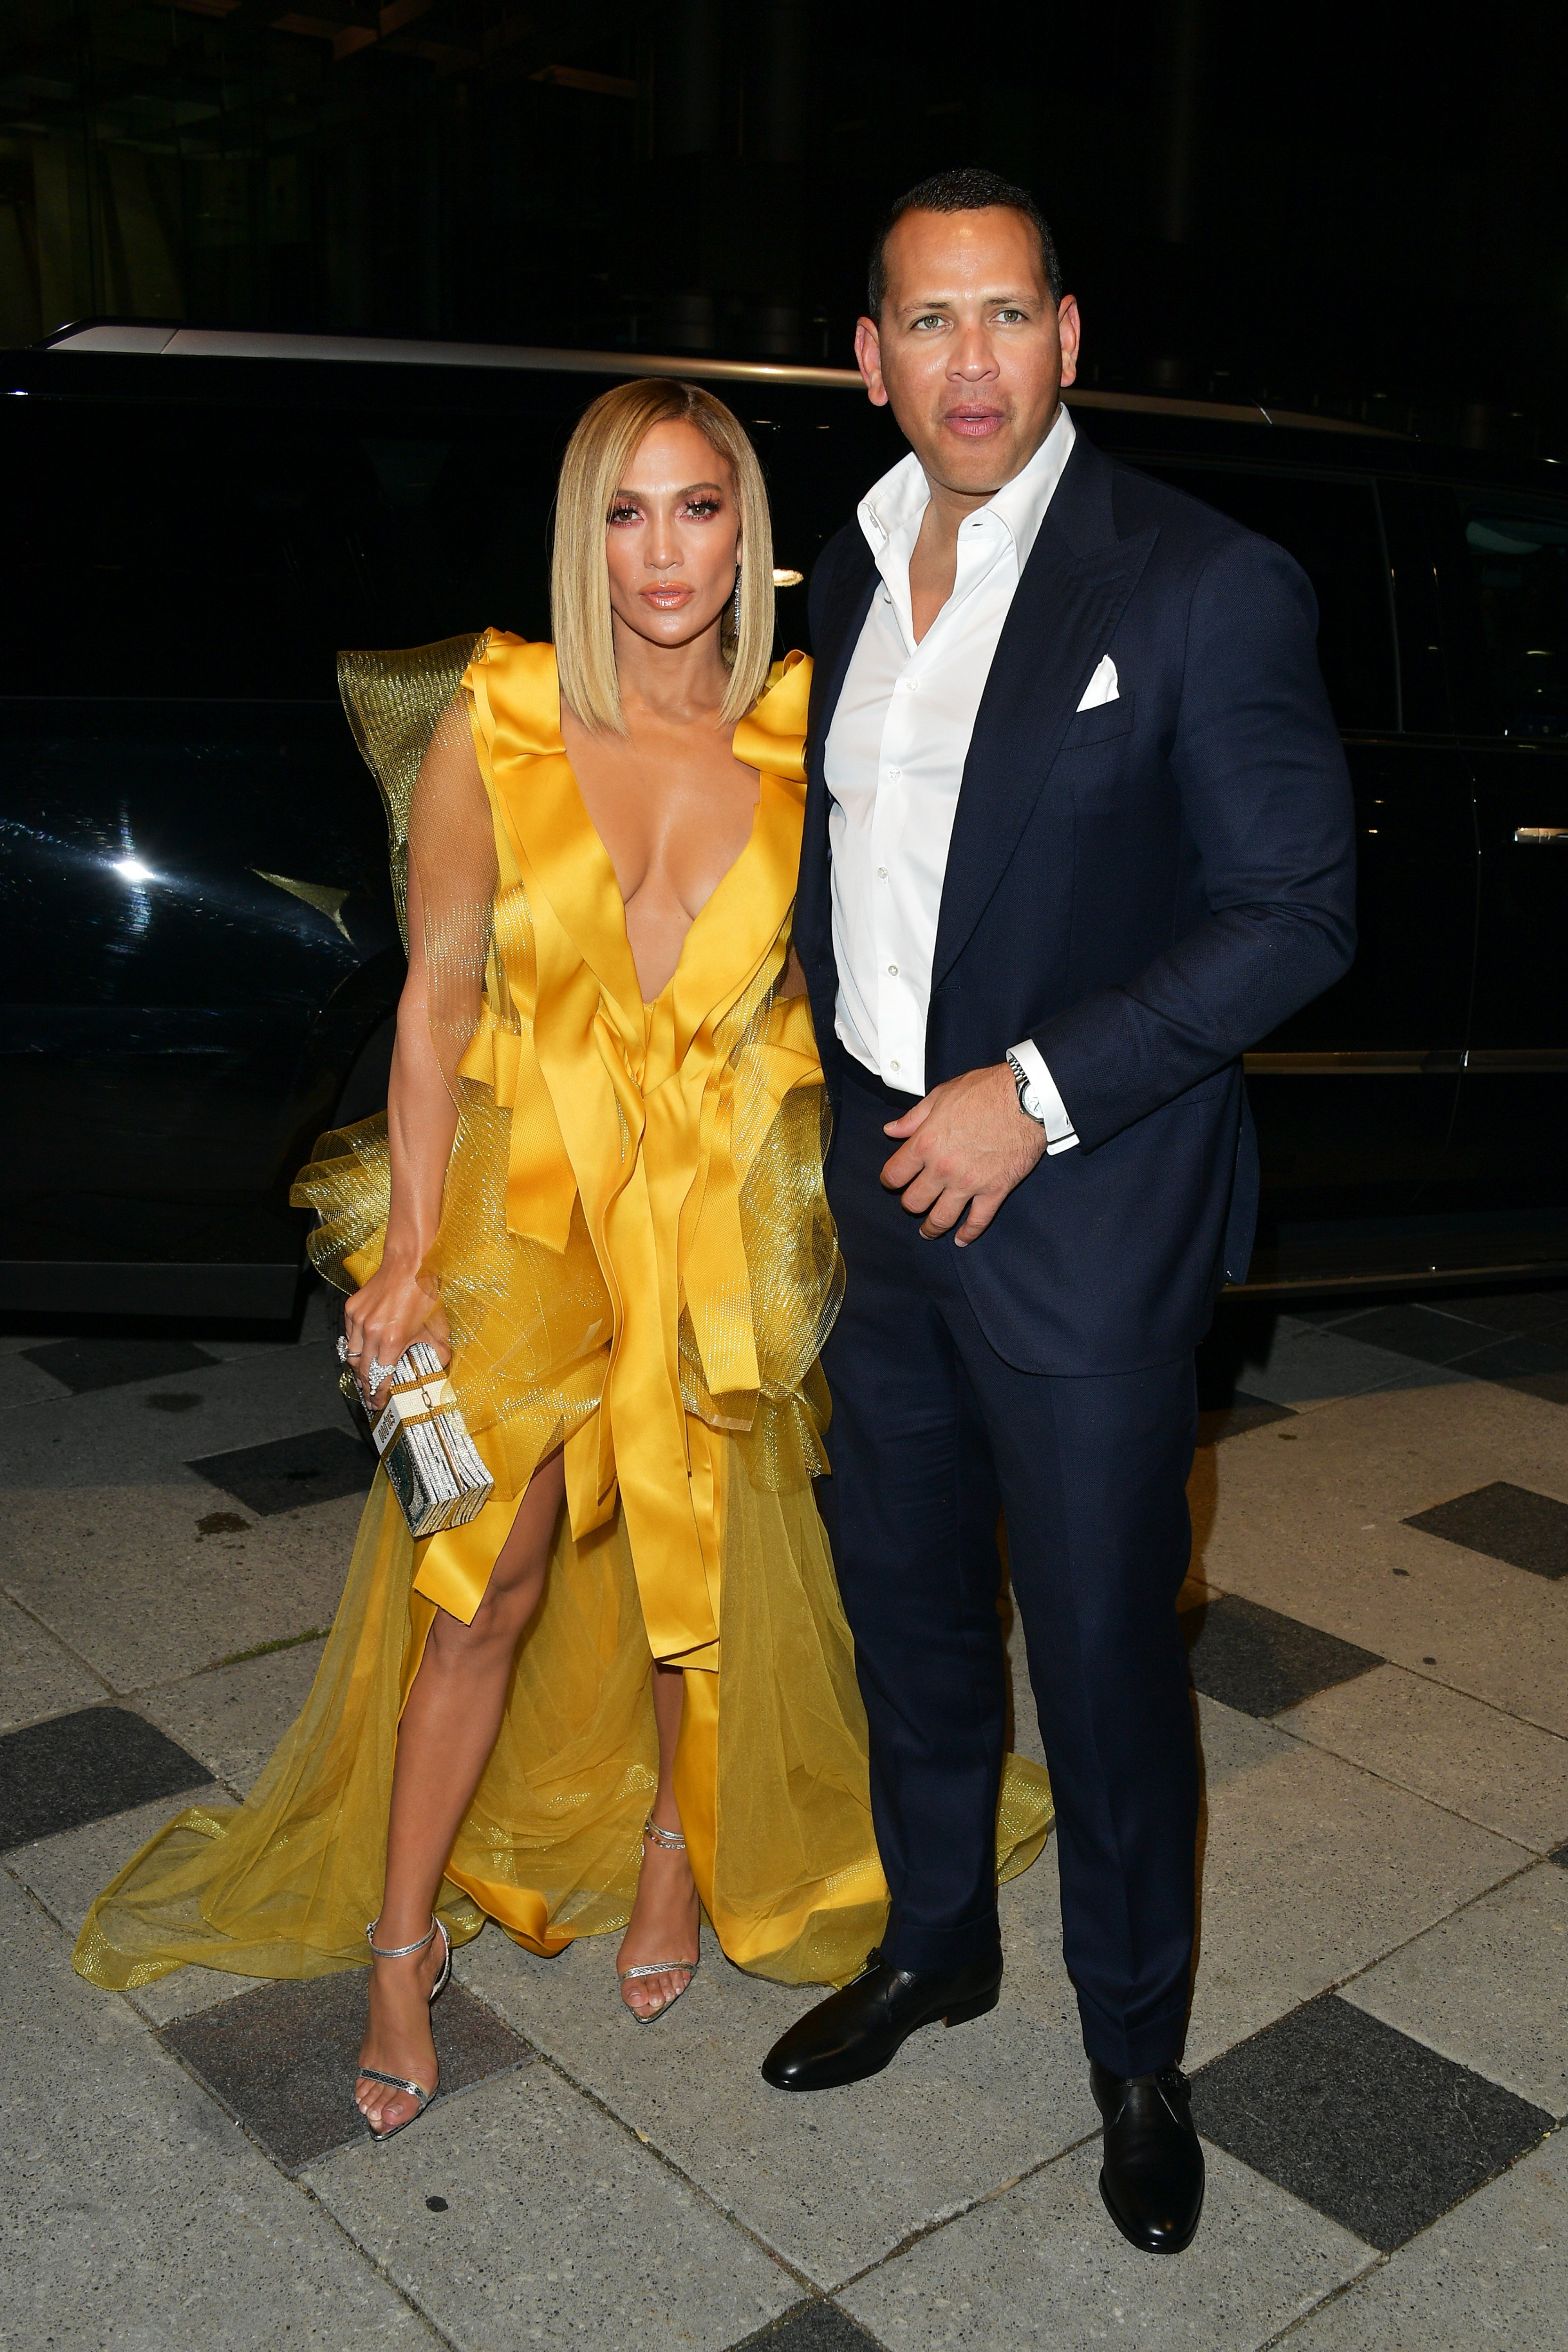 """Jennifer Lopez and Alex Rodriguez at the """"Hustlers"""" premiere in Toronto, September, 2019. 